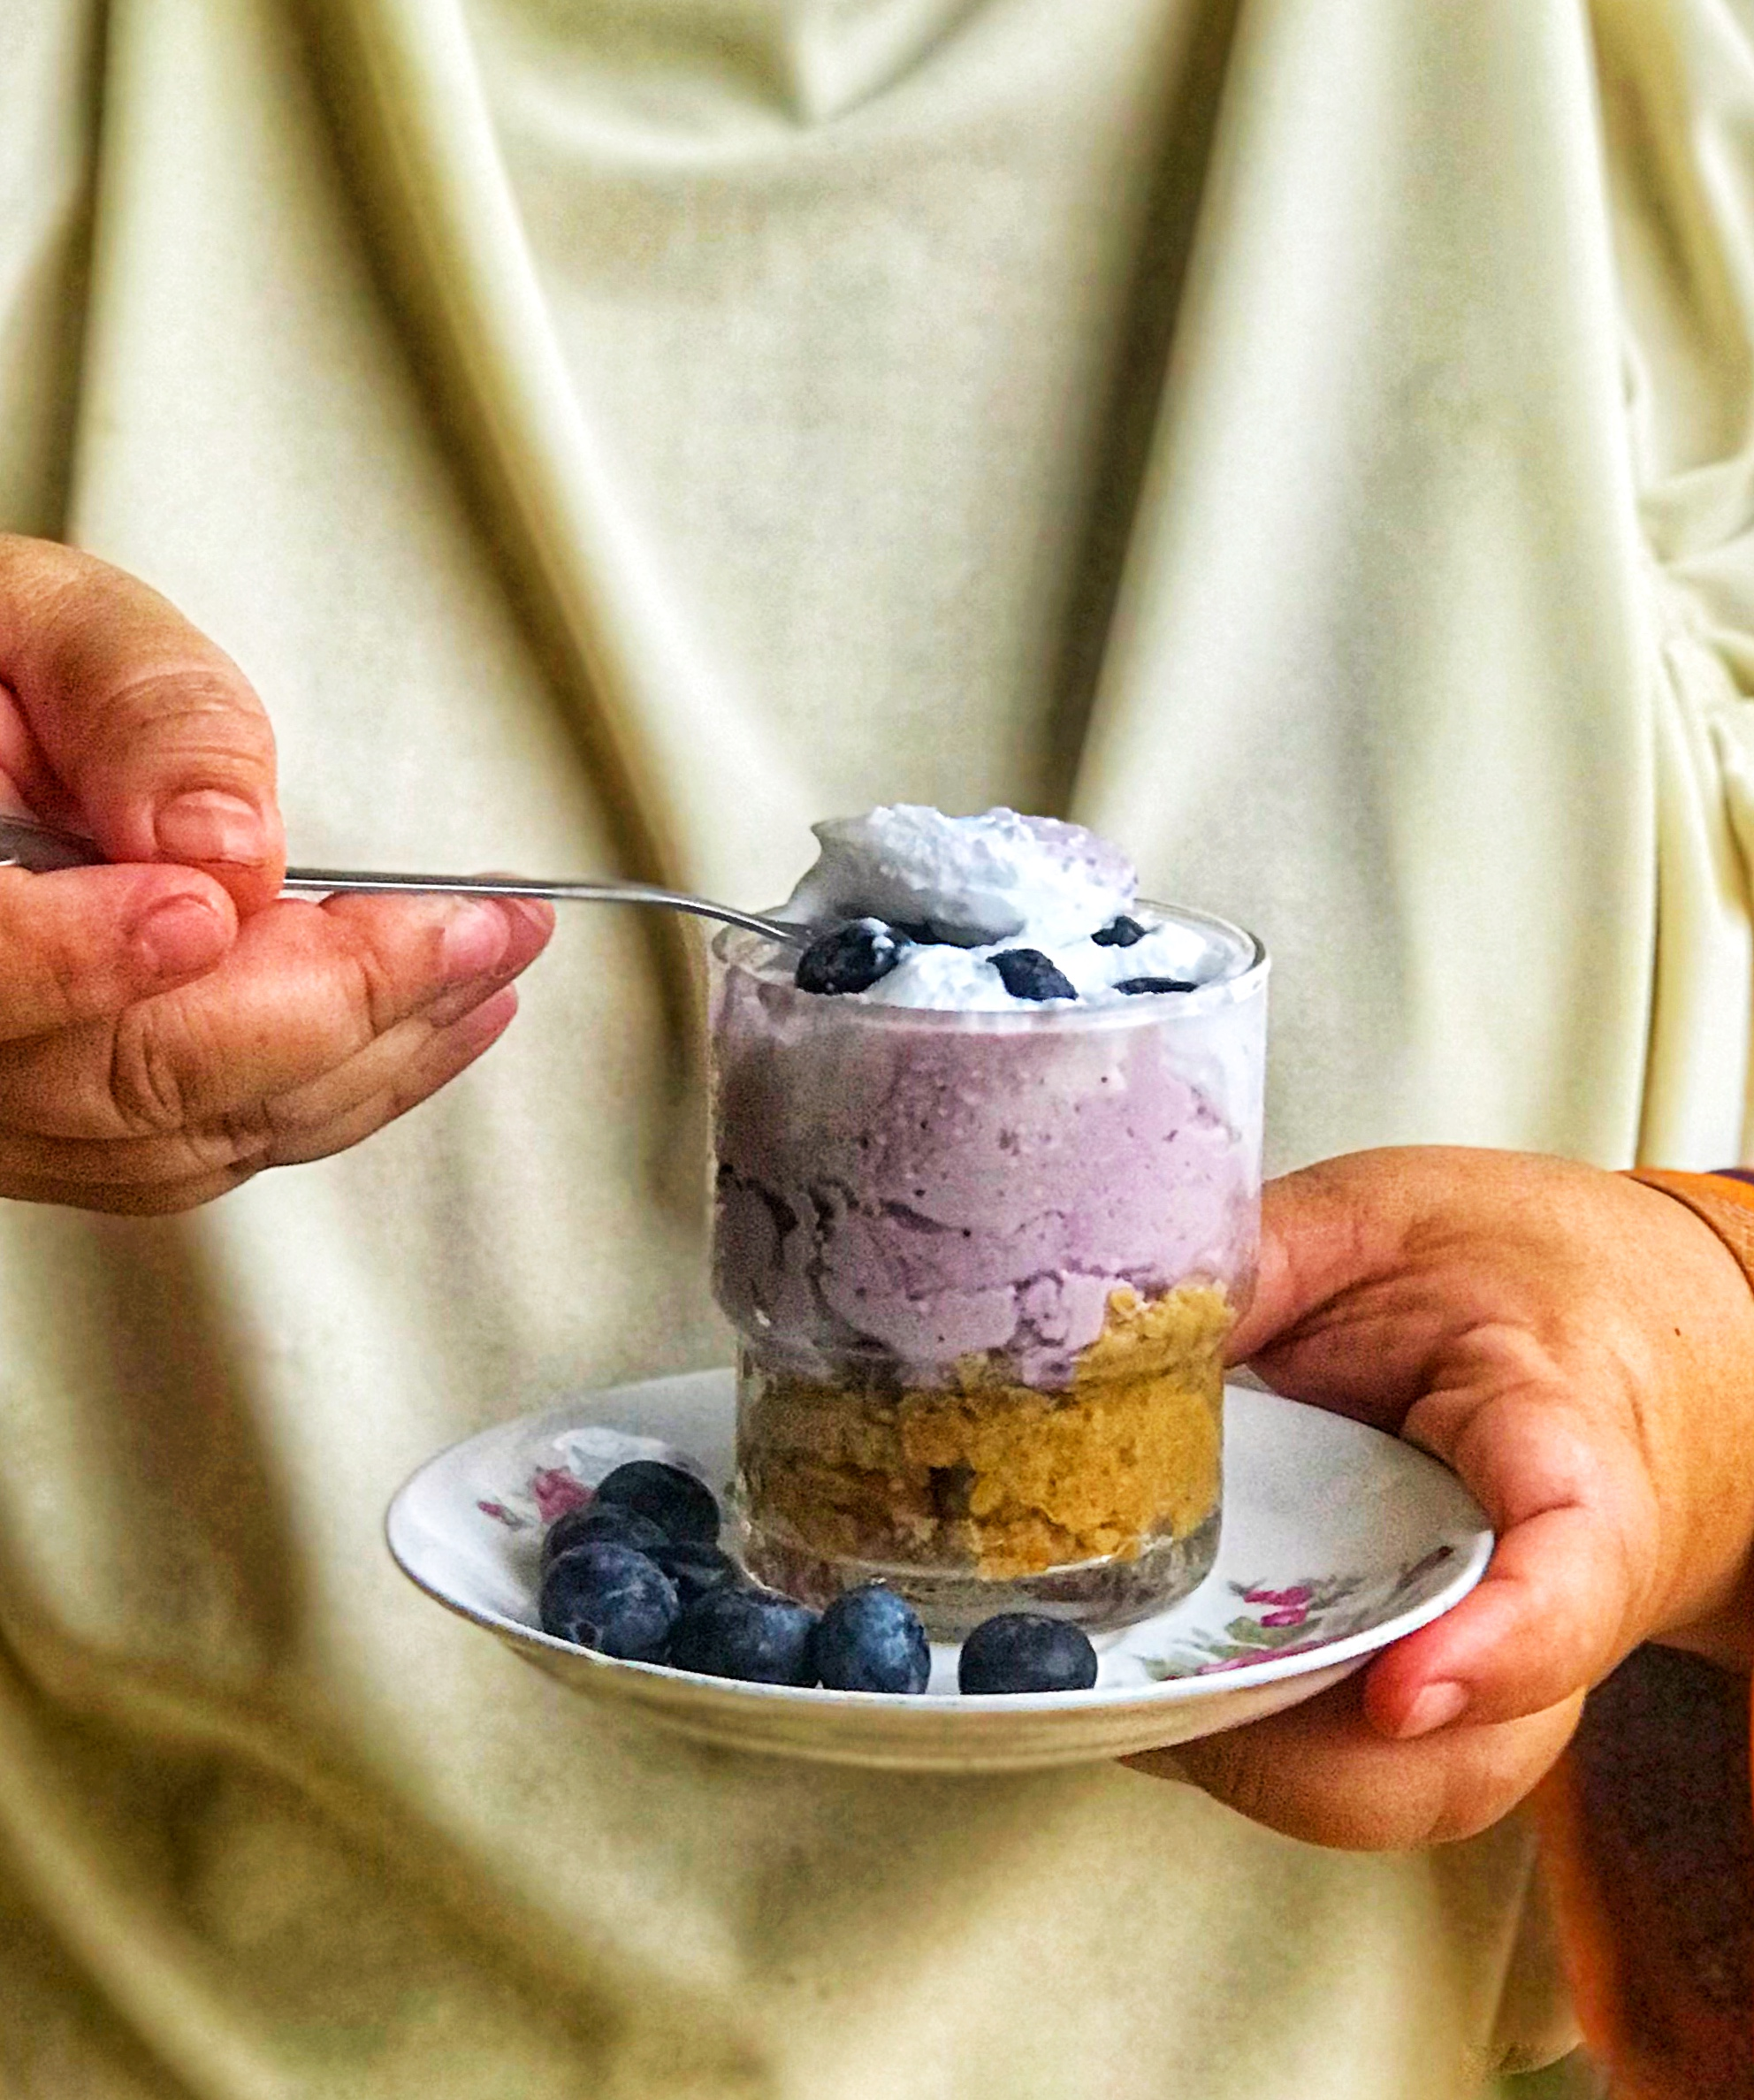 Manisan Popular – Kek Keju Blueberry  (Chilled Bluberry Chesse Cake)